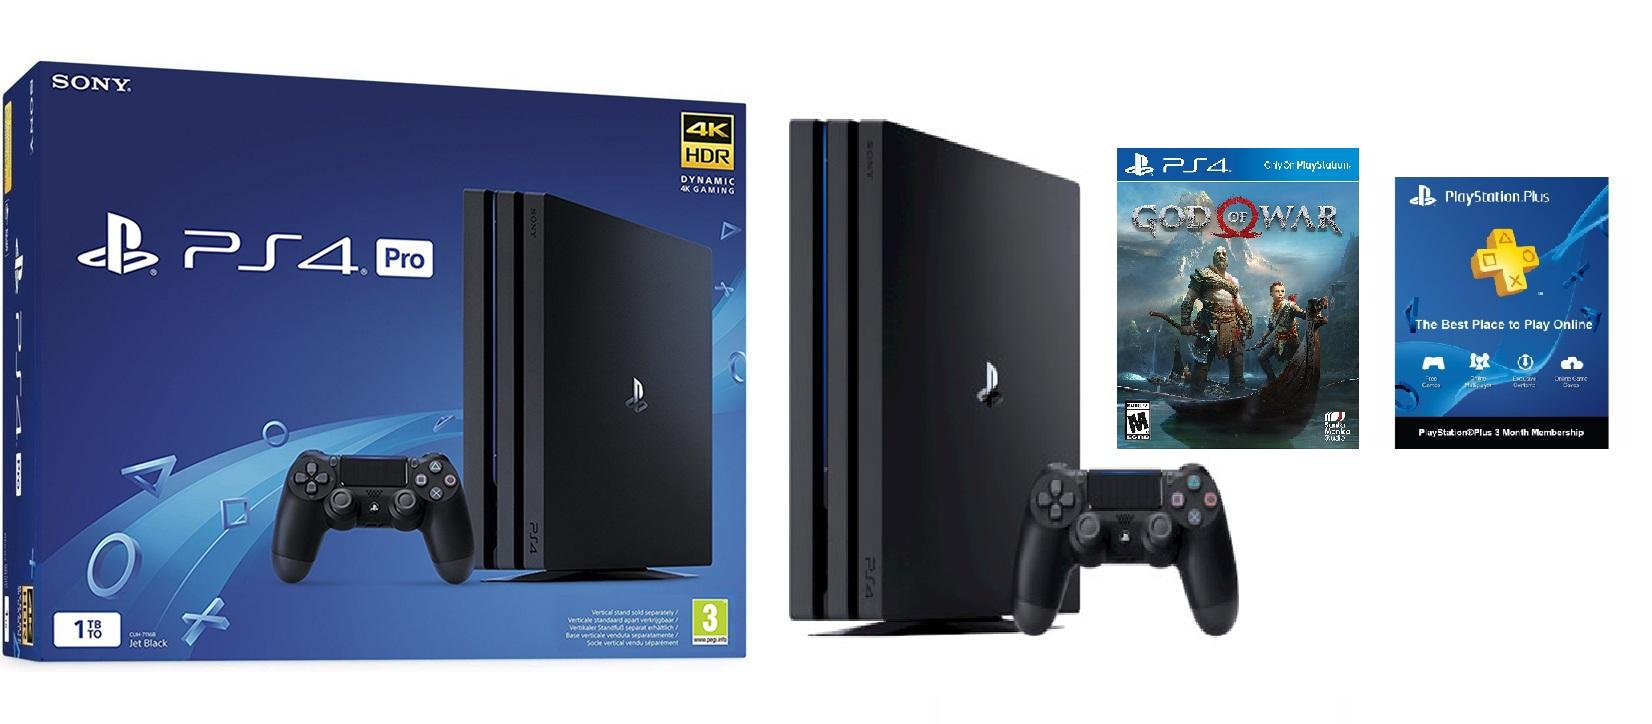 Latest Sony Playstation Consoles Products Enjoy Huge Discounts 4 Pro 1tb Region 3 Ps4 4k Hdr Console Black God Of War 2018